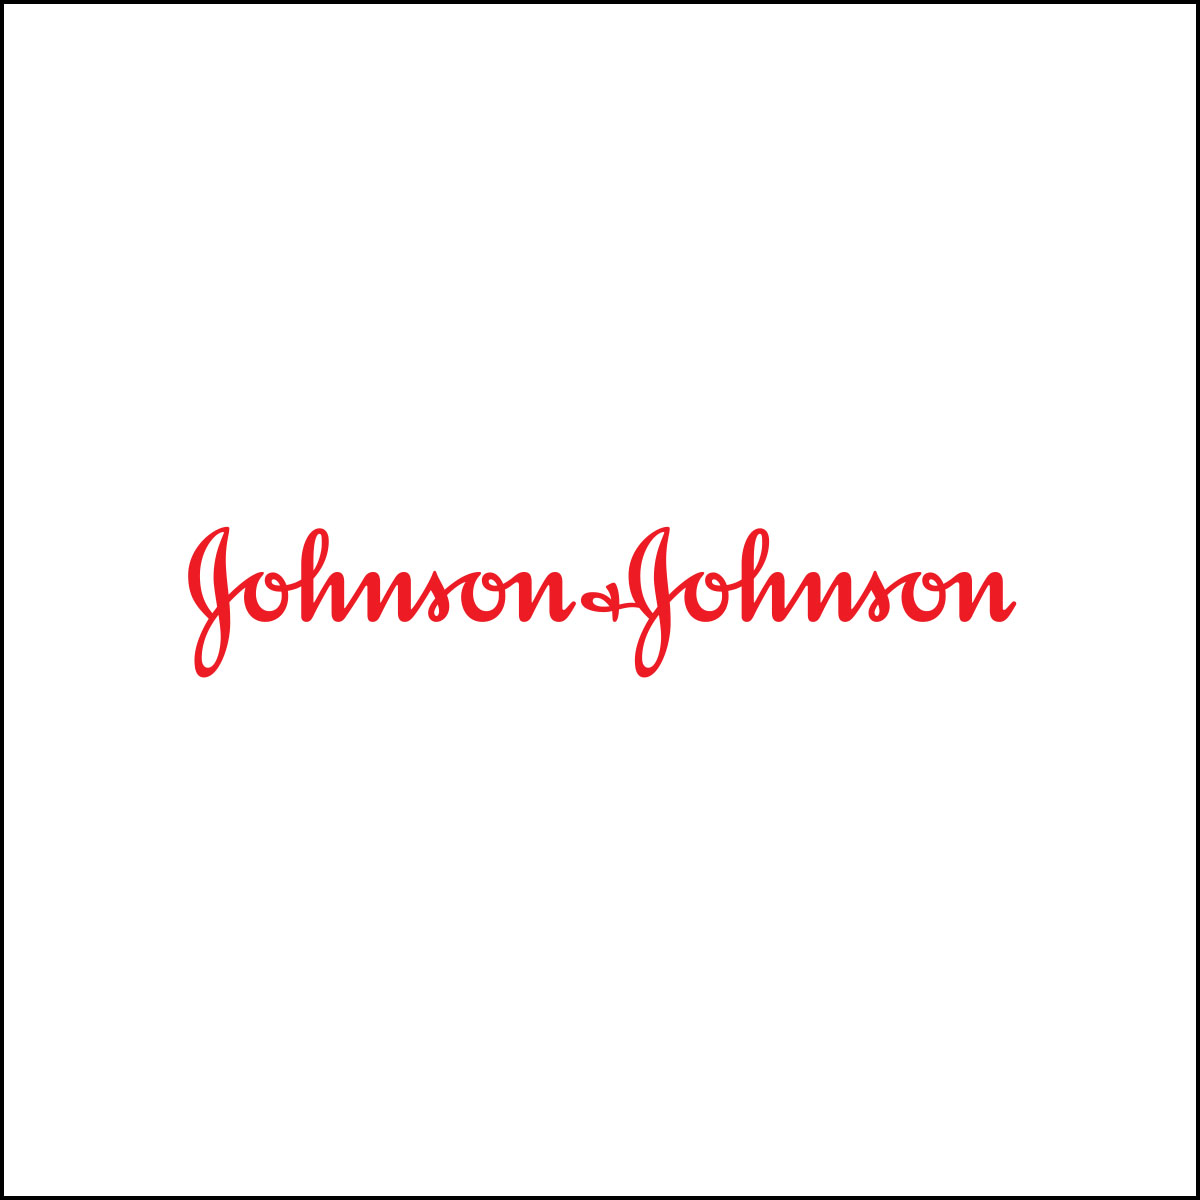 Johnson & Johnson  Global market research, portfolio positioning, global and domestic product launches for 10 Ethicon Women's Health & Urology brands.   Corporate mission, vision, values, portfolio positioning and global product launch for Ortho Clinical Diagnostics.